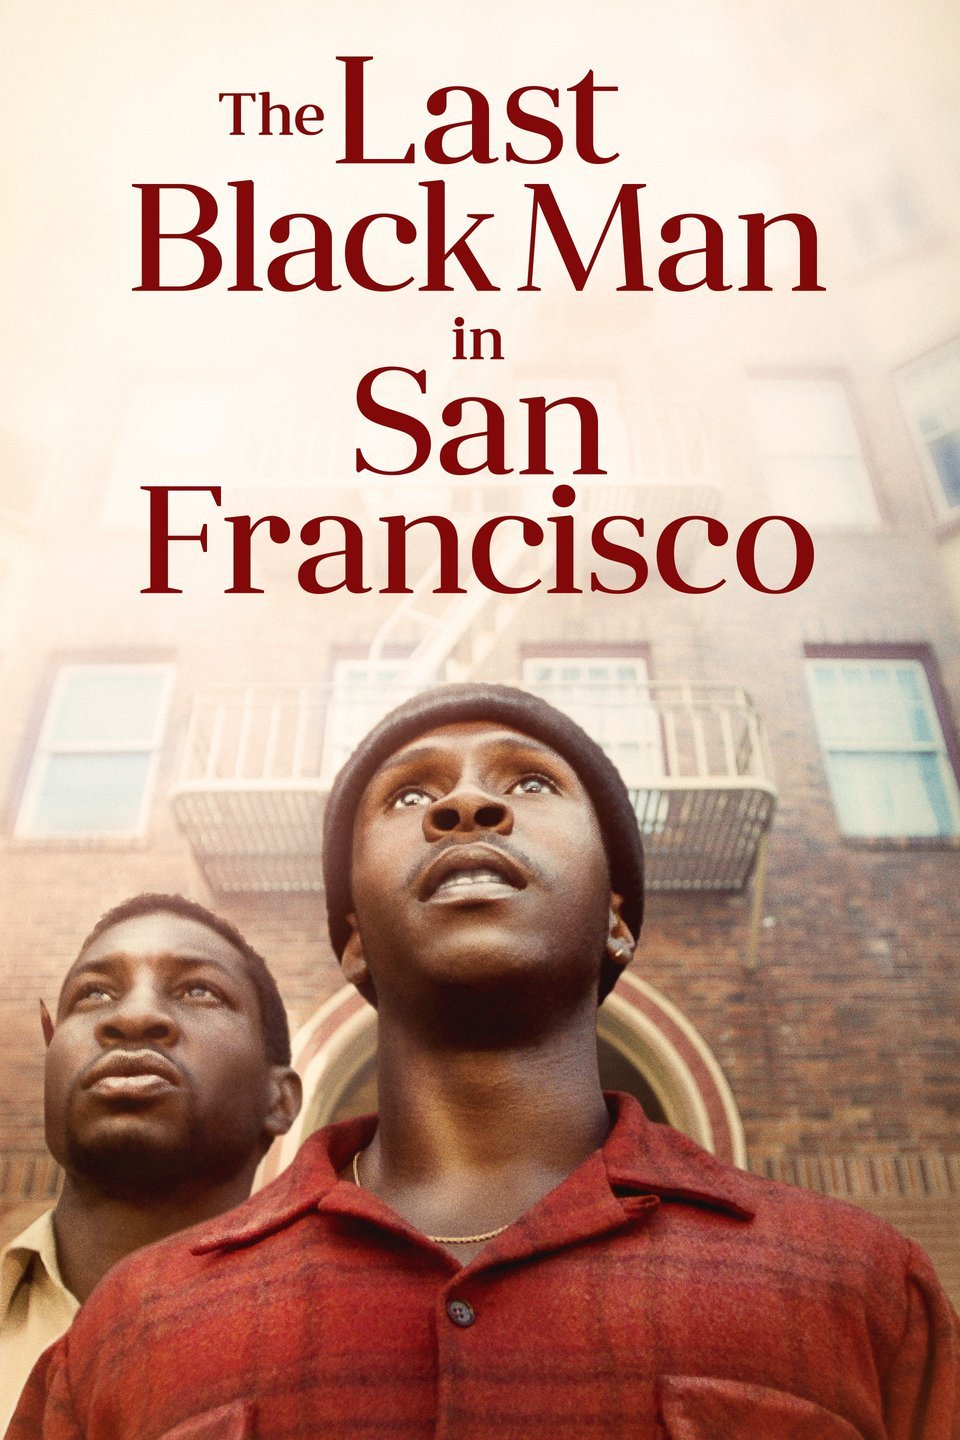 ดูหนังใหม่ The Last Black Man in San Francisco